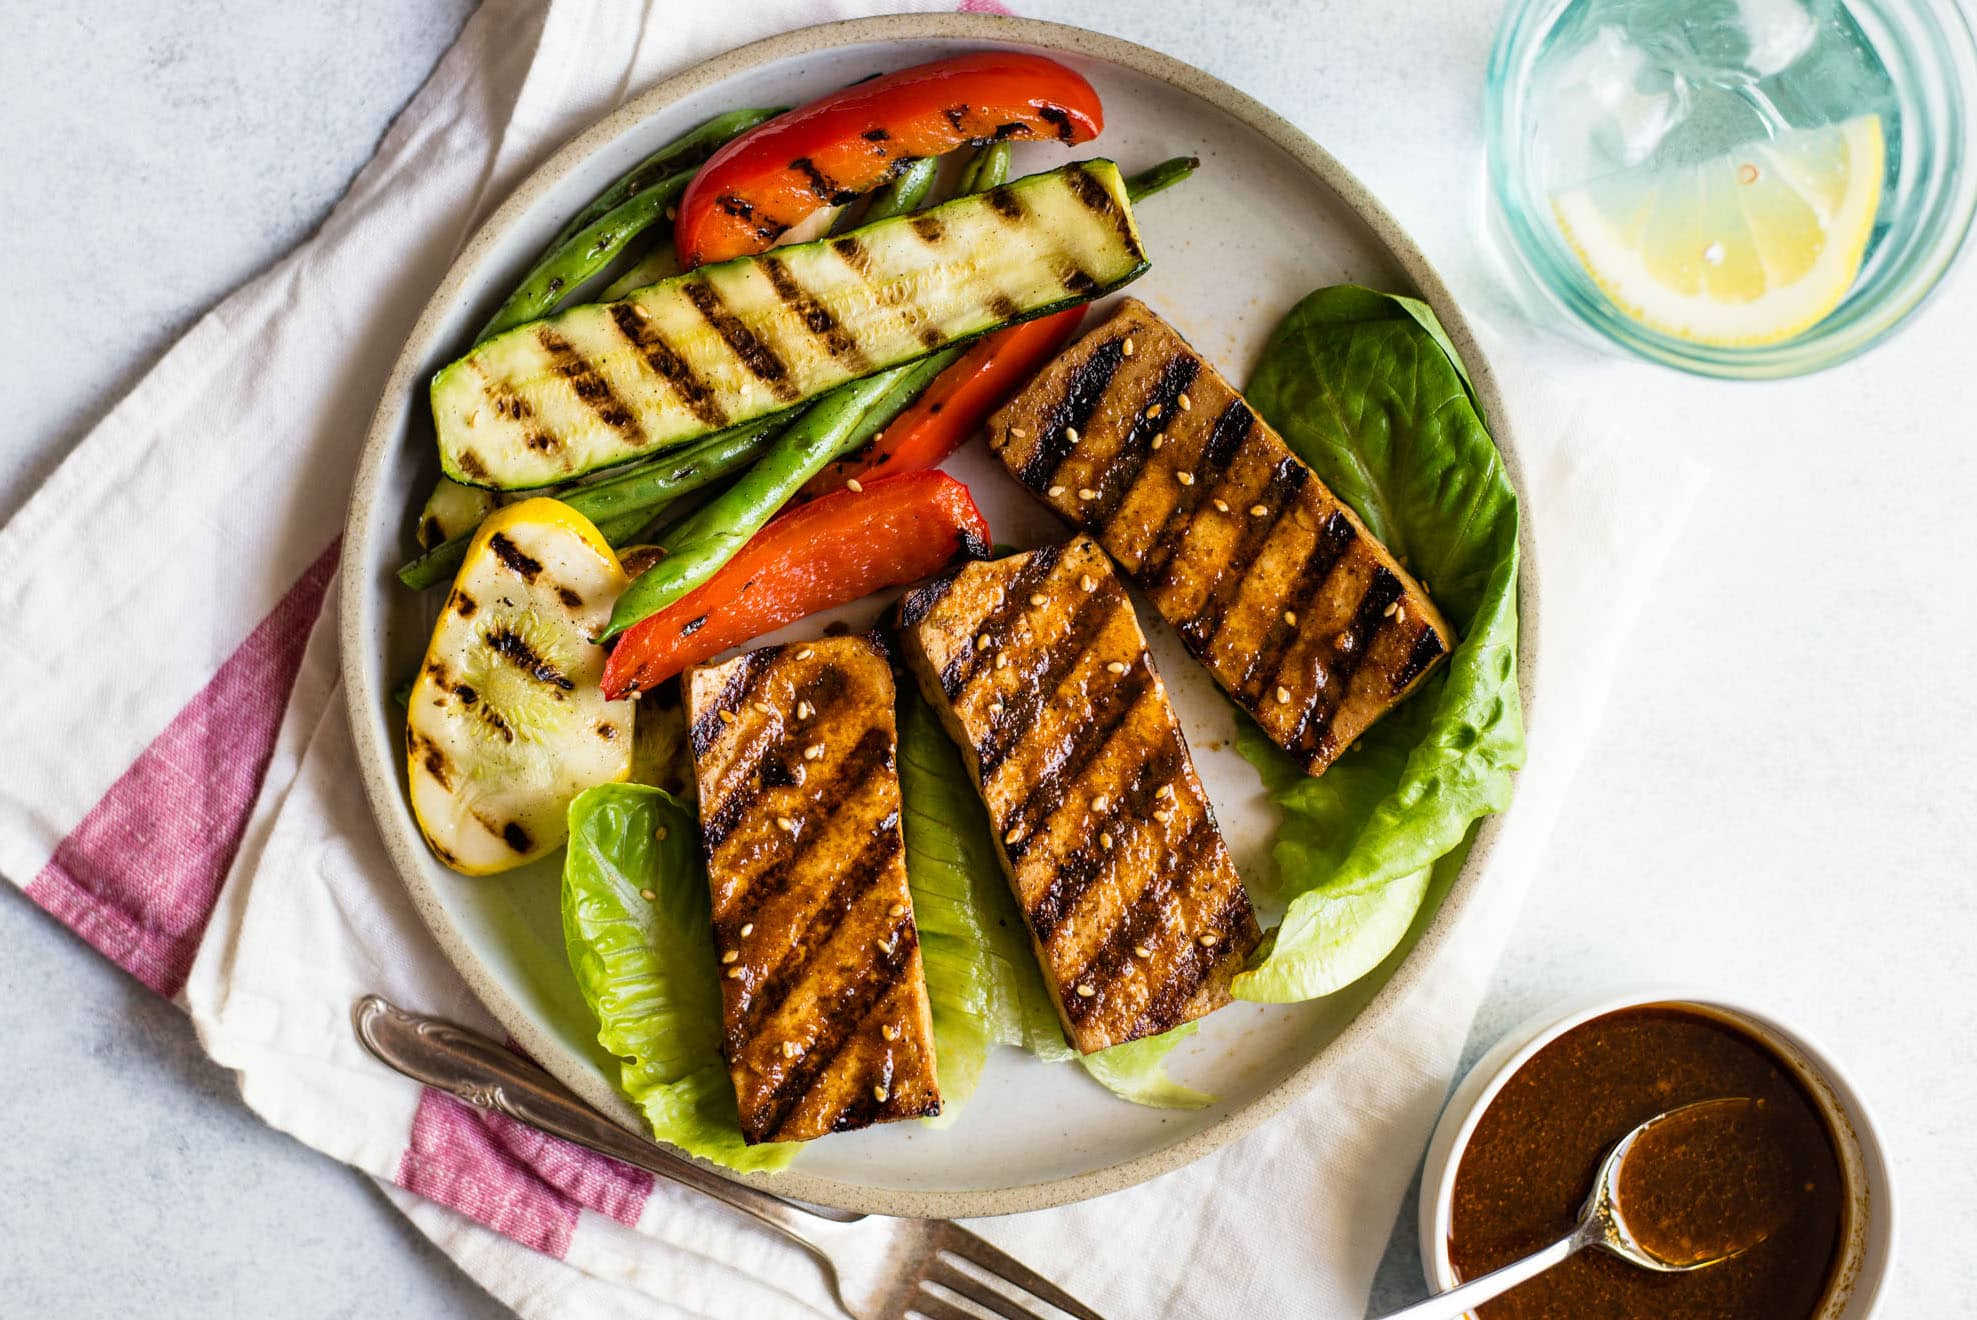 15 of the Best Vegetarian Grilling Recipes: Cajun-Spiced Grilled Tofu